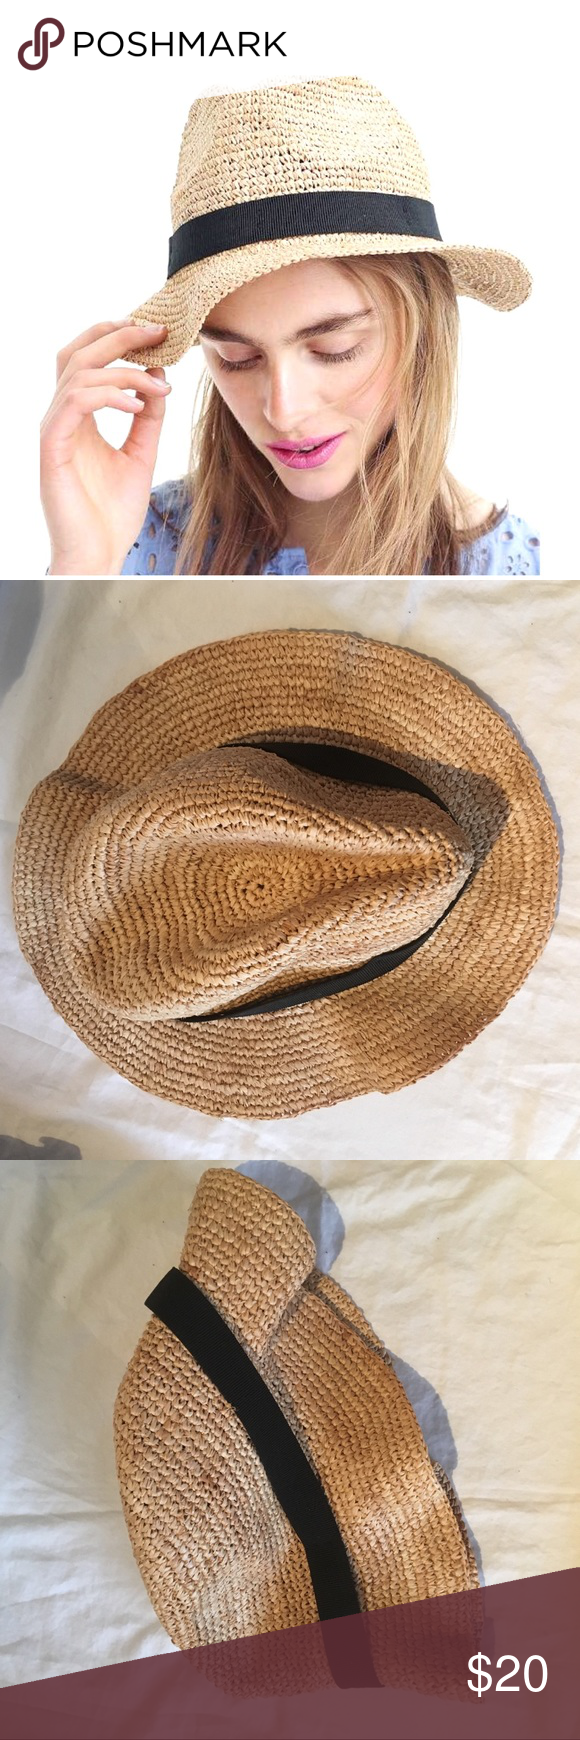 e34f228684c5d J. Crew Packable Straw Hat Packable straw hat